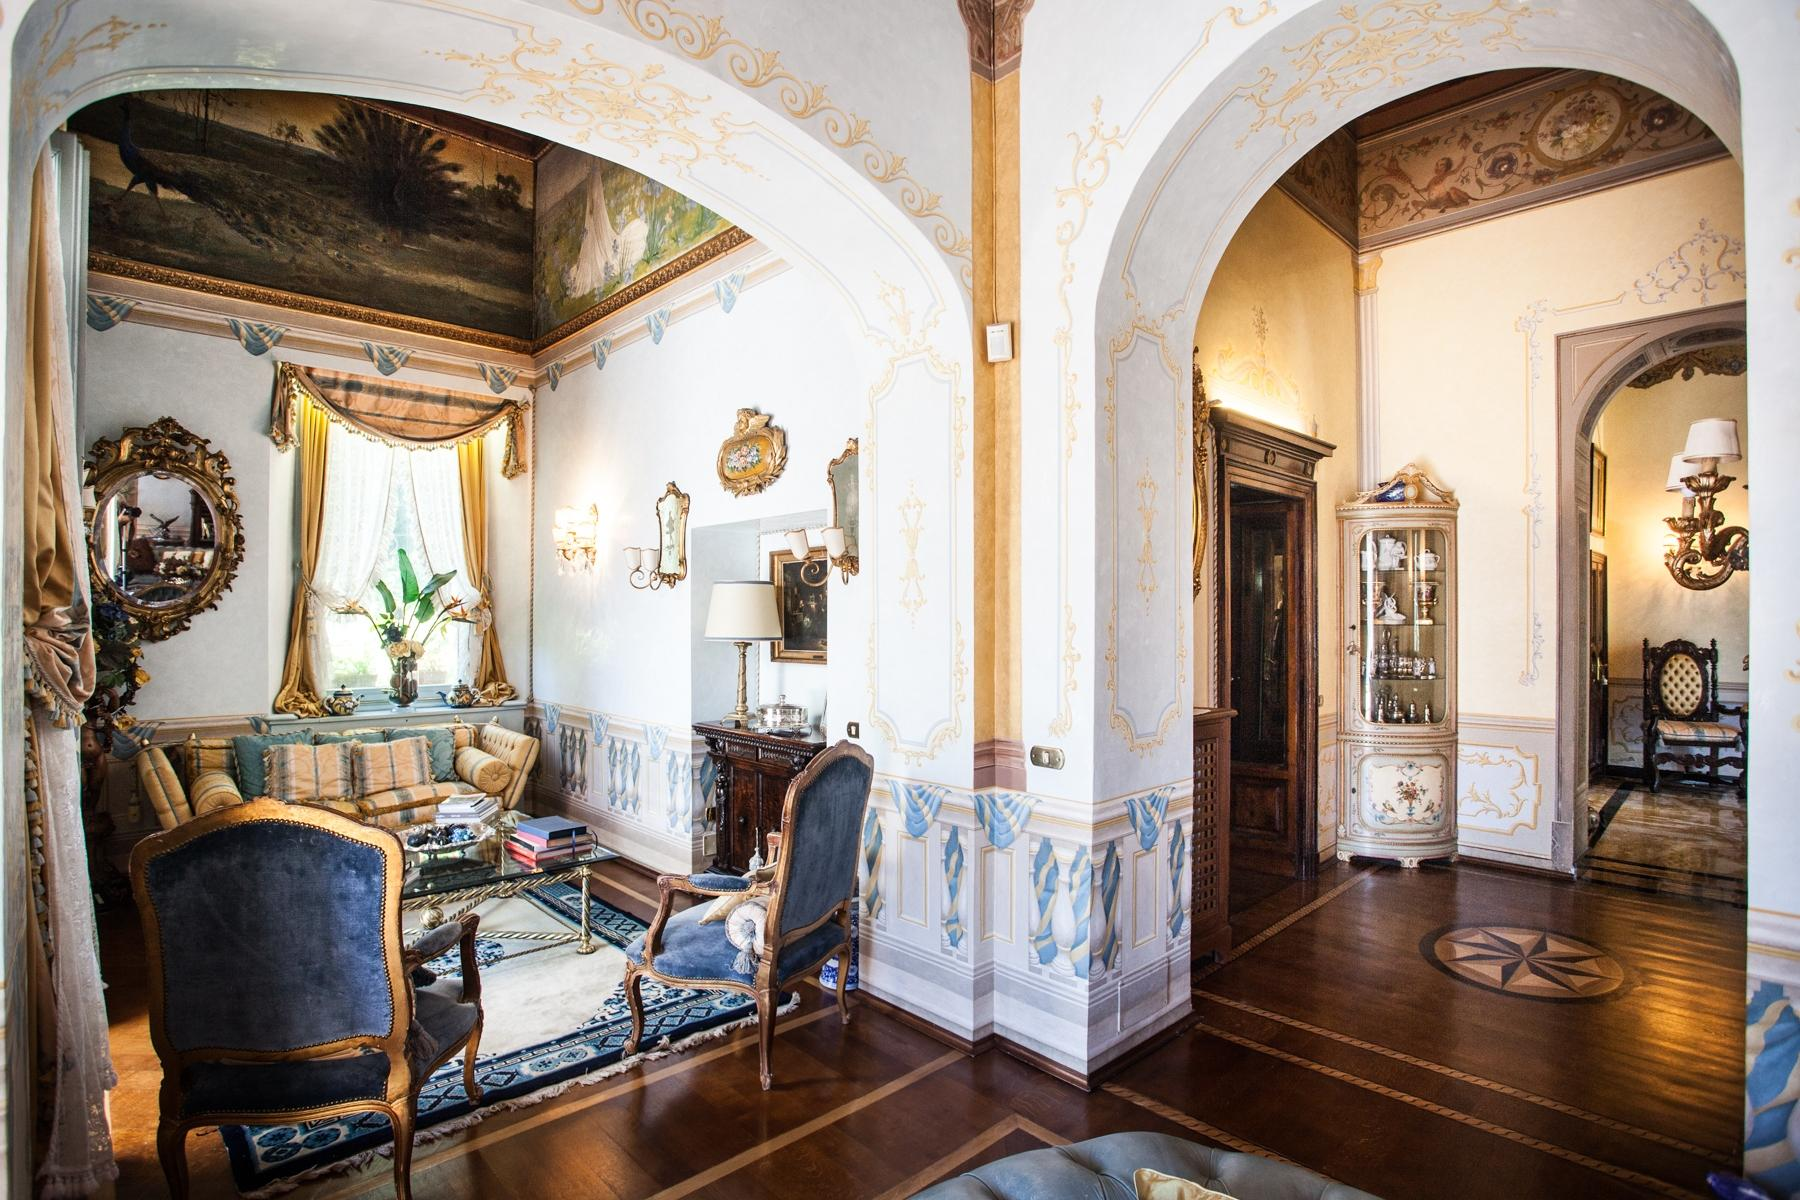 Charming historic villa with private park - 13